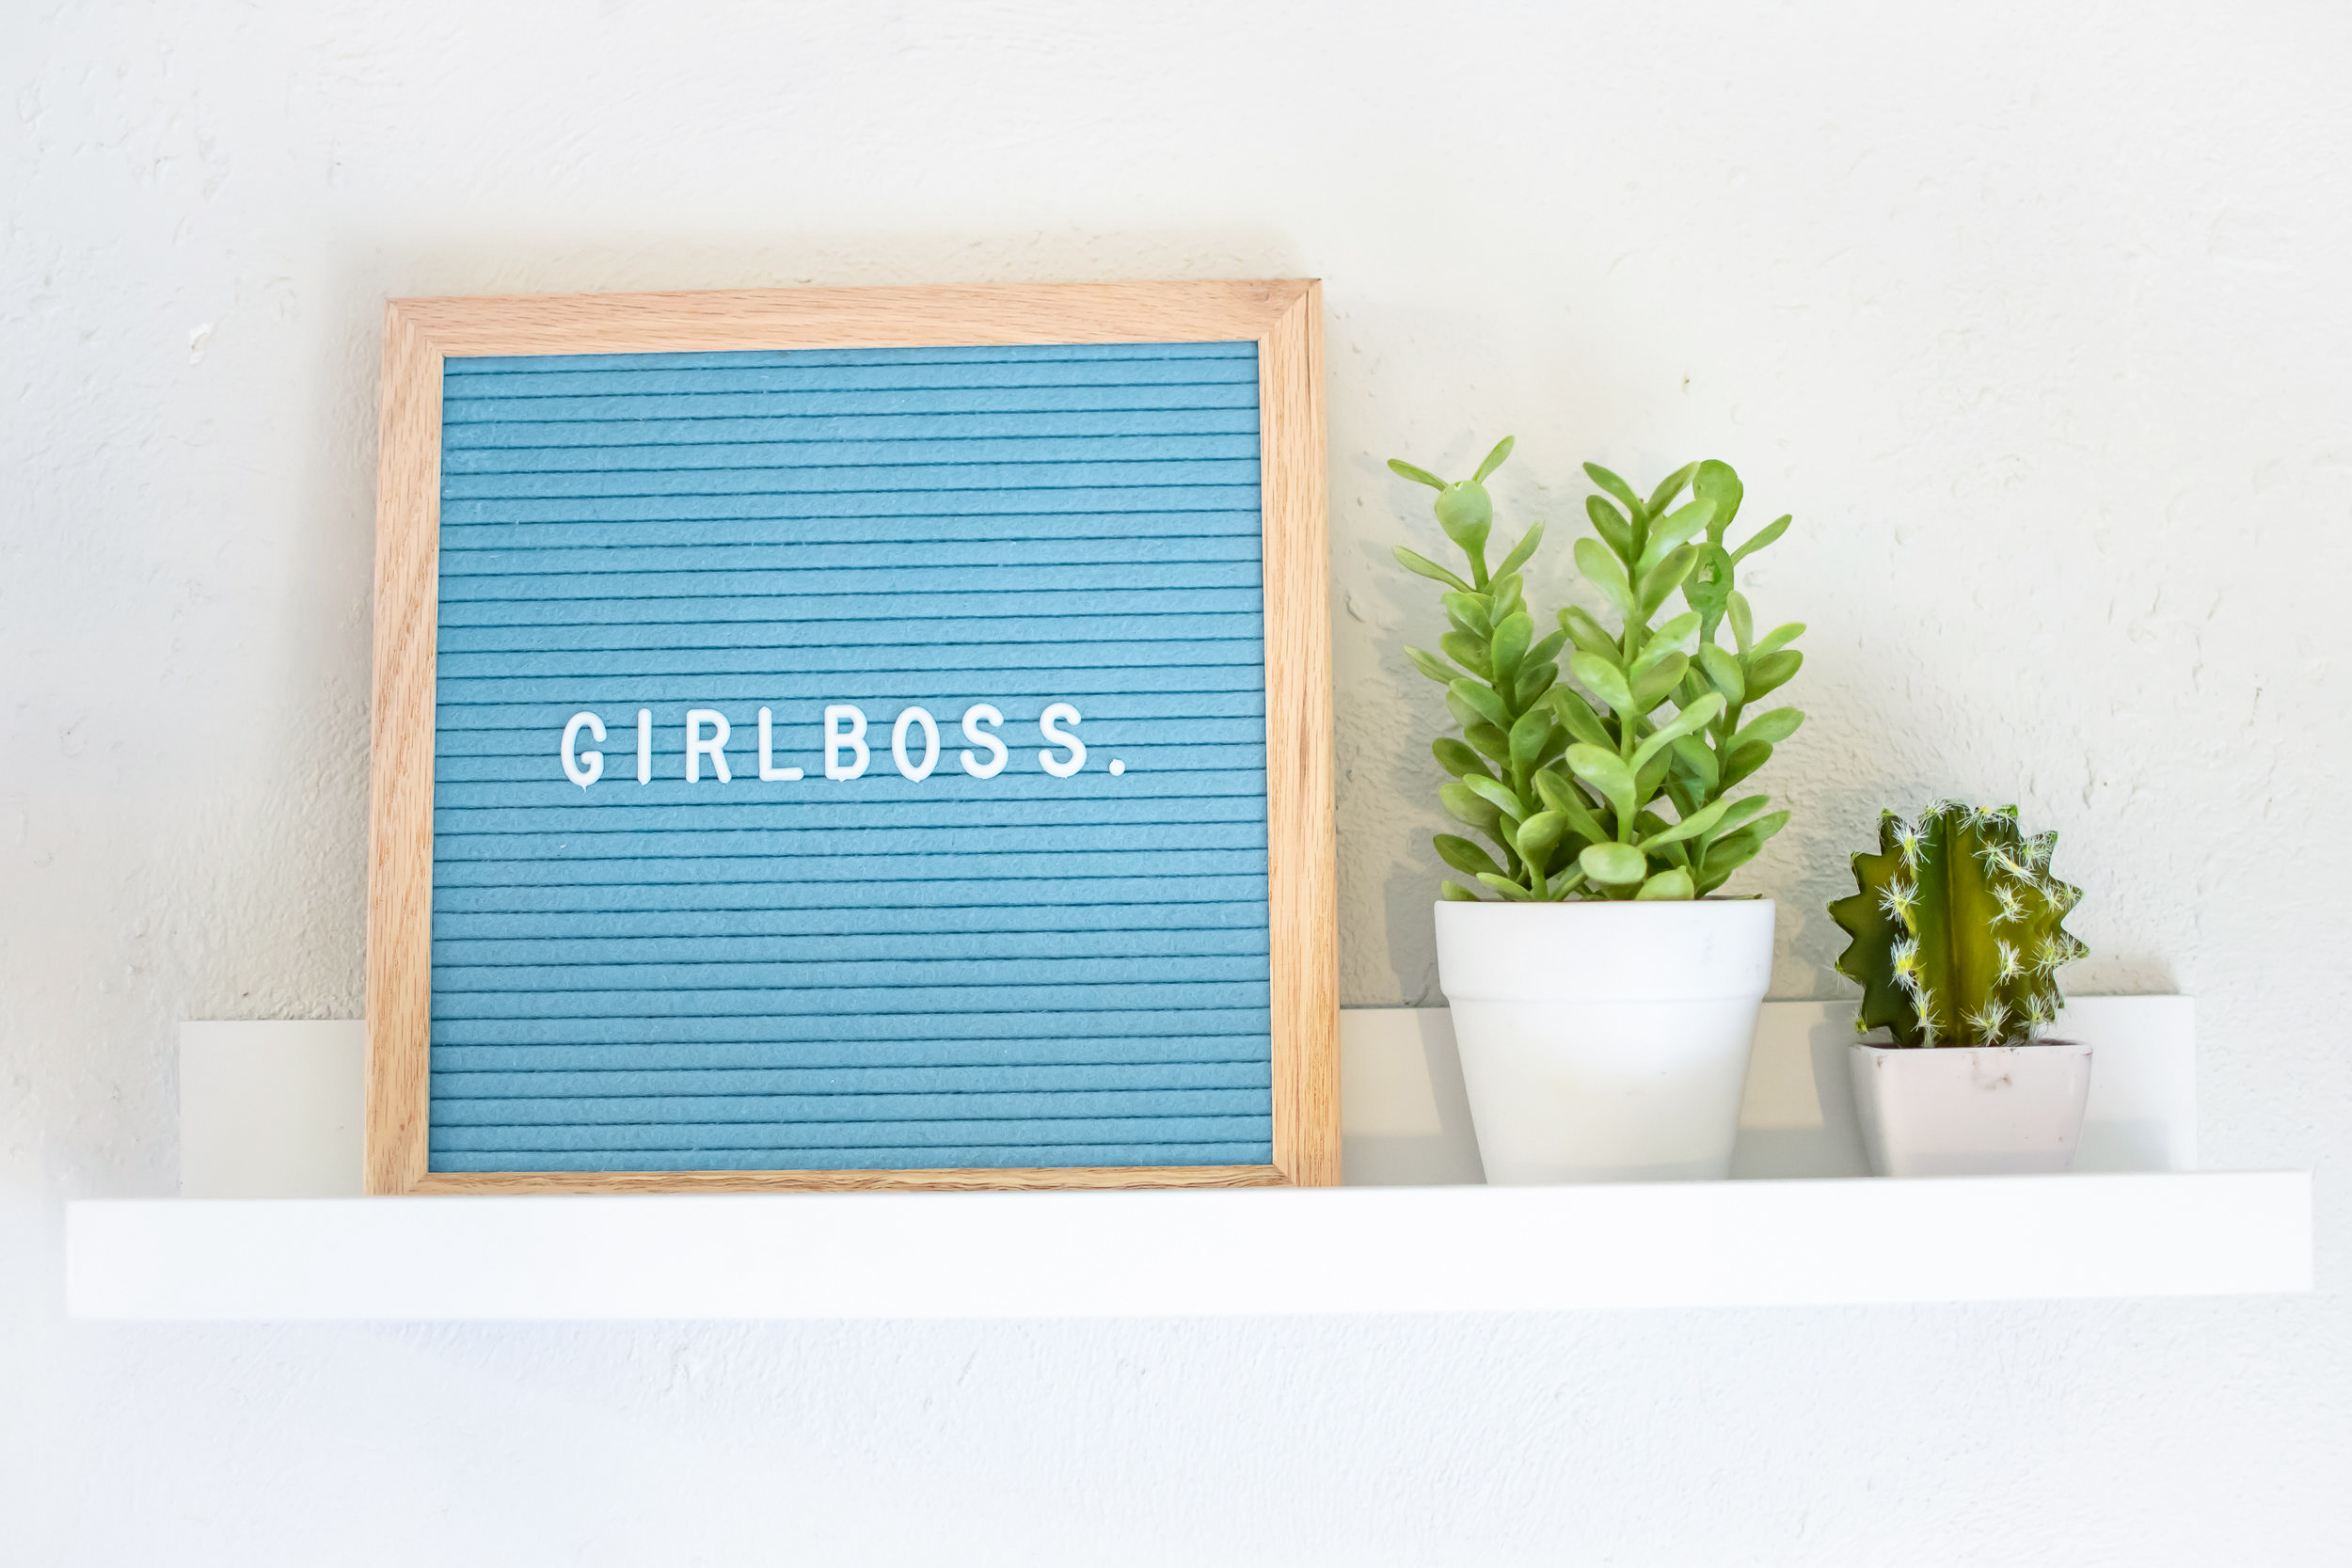 girlboss-sign-close-up-ps-2.jpg